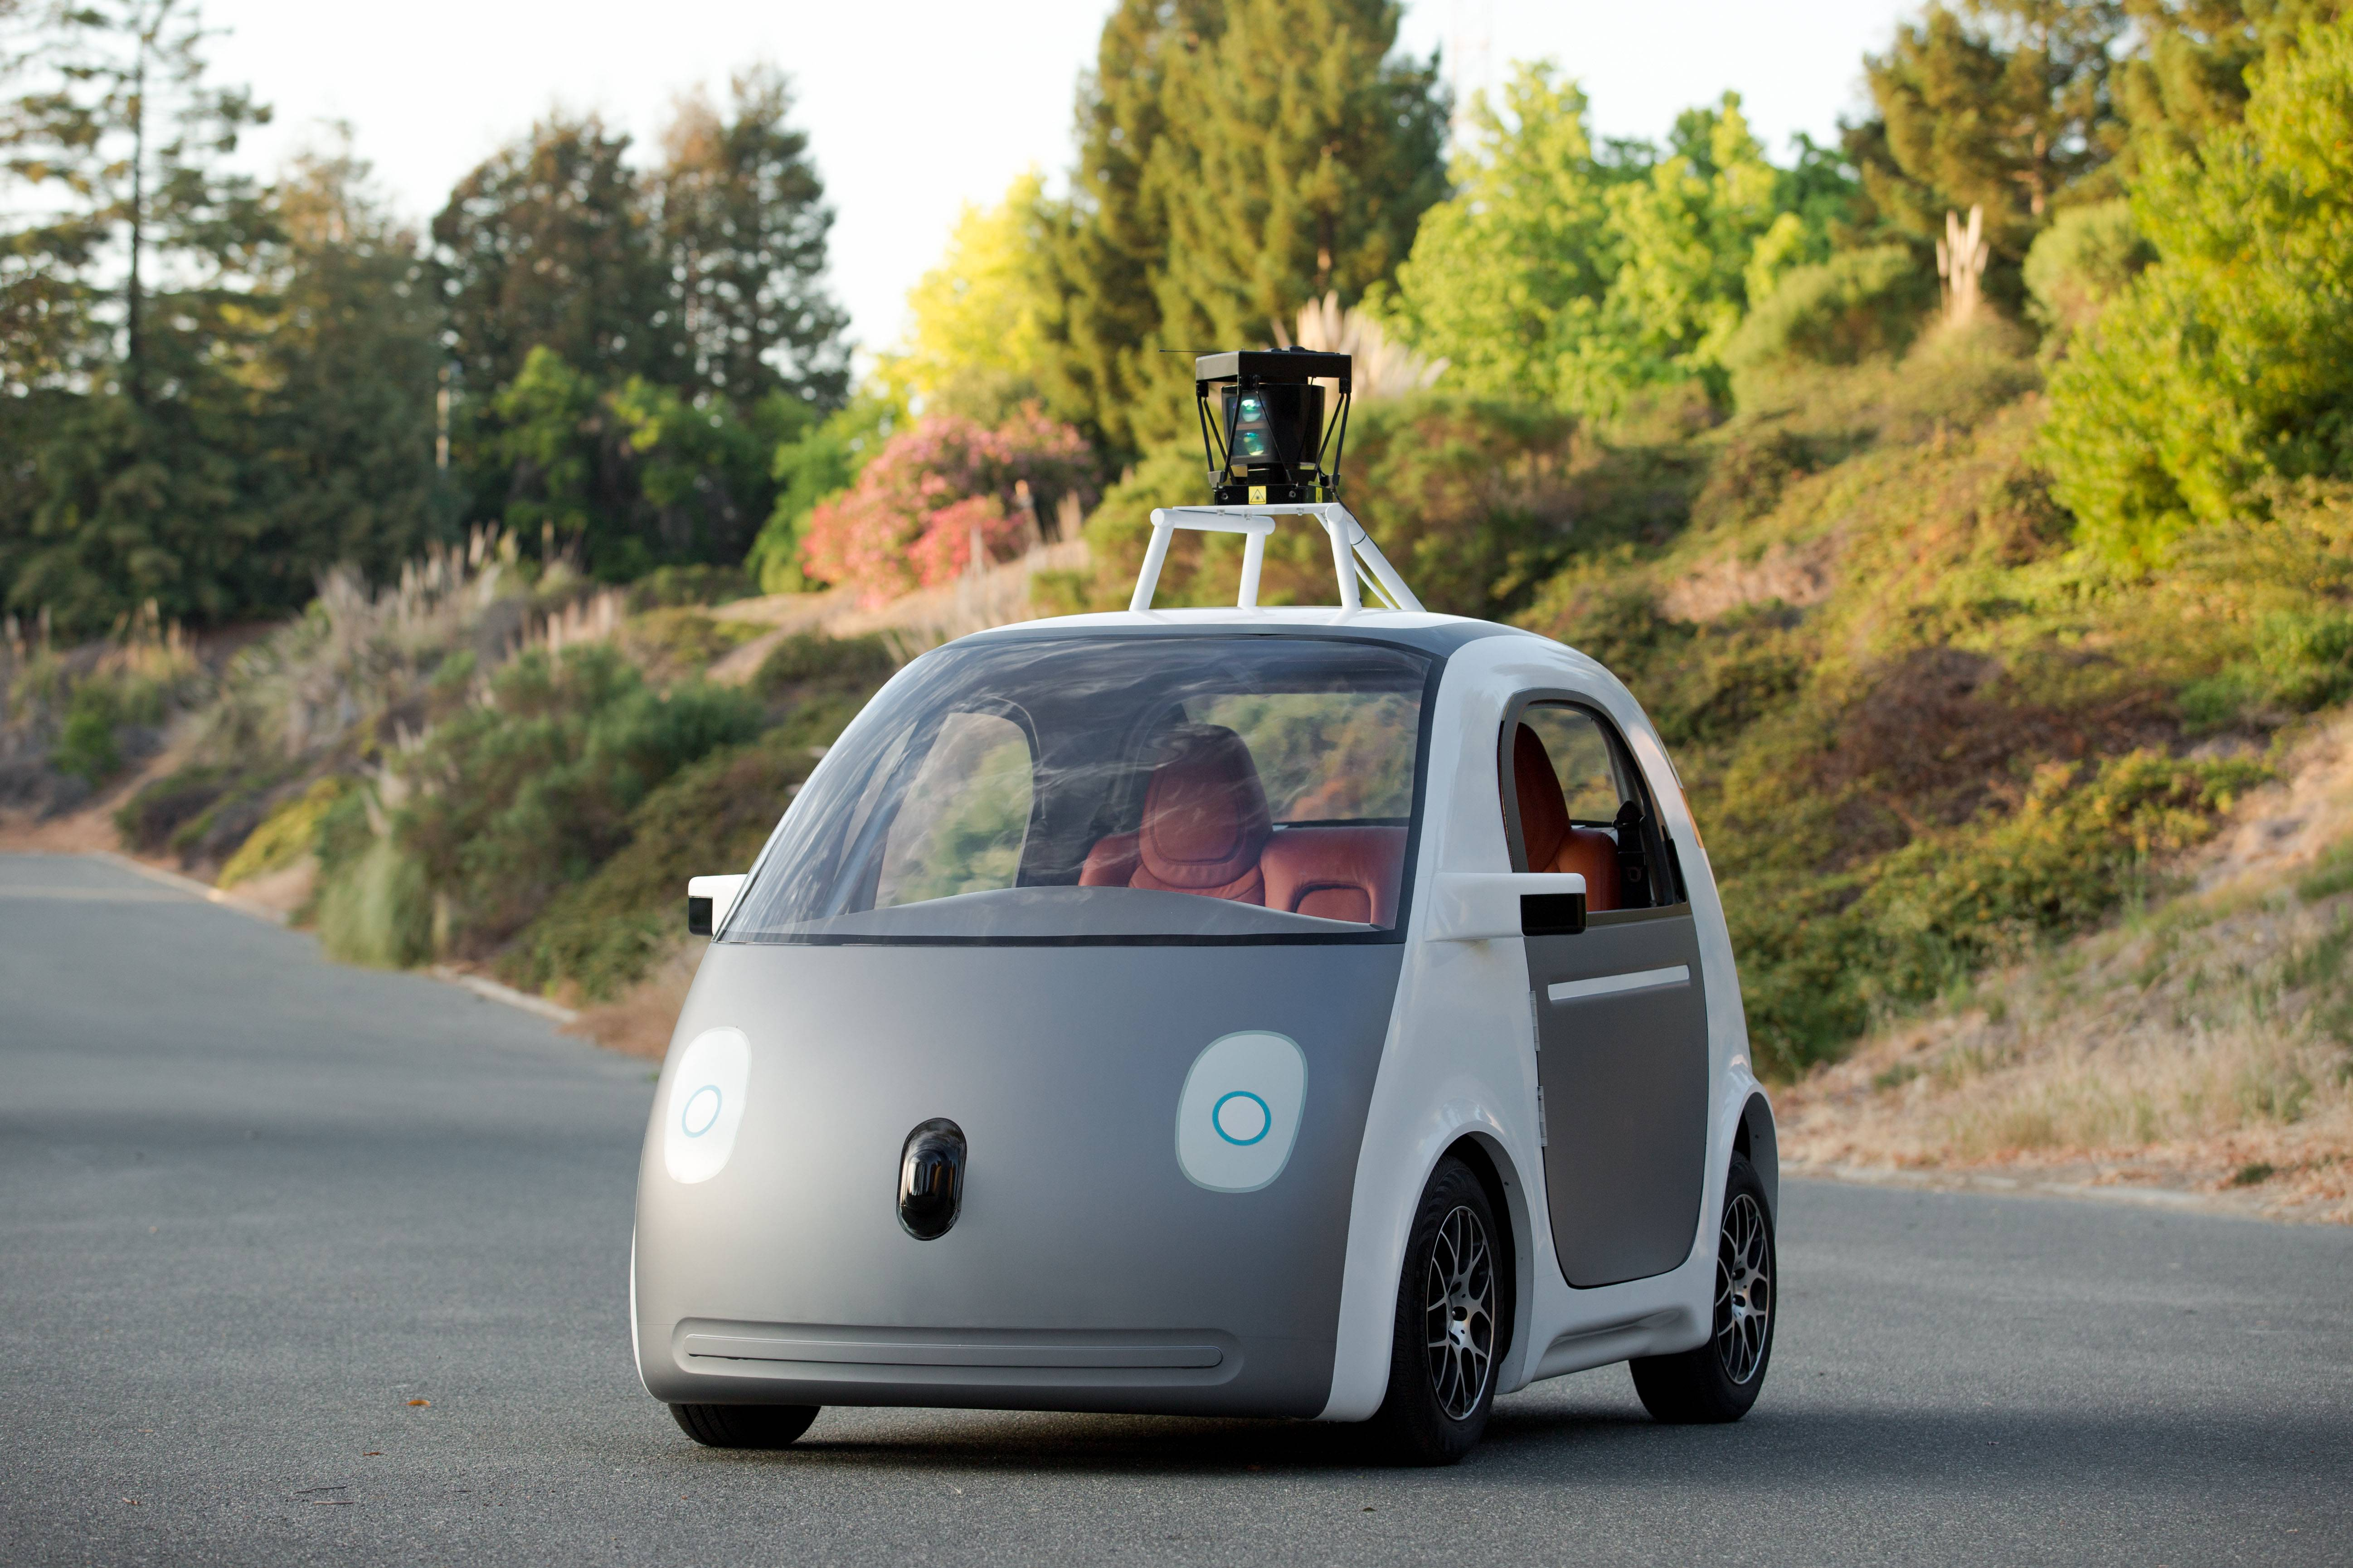 Google takes step forward on self-driving vehicles